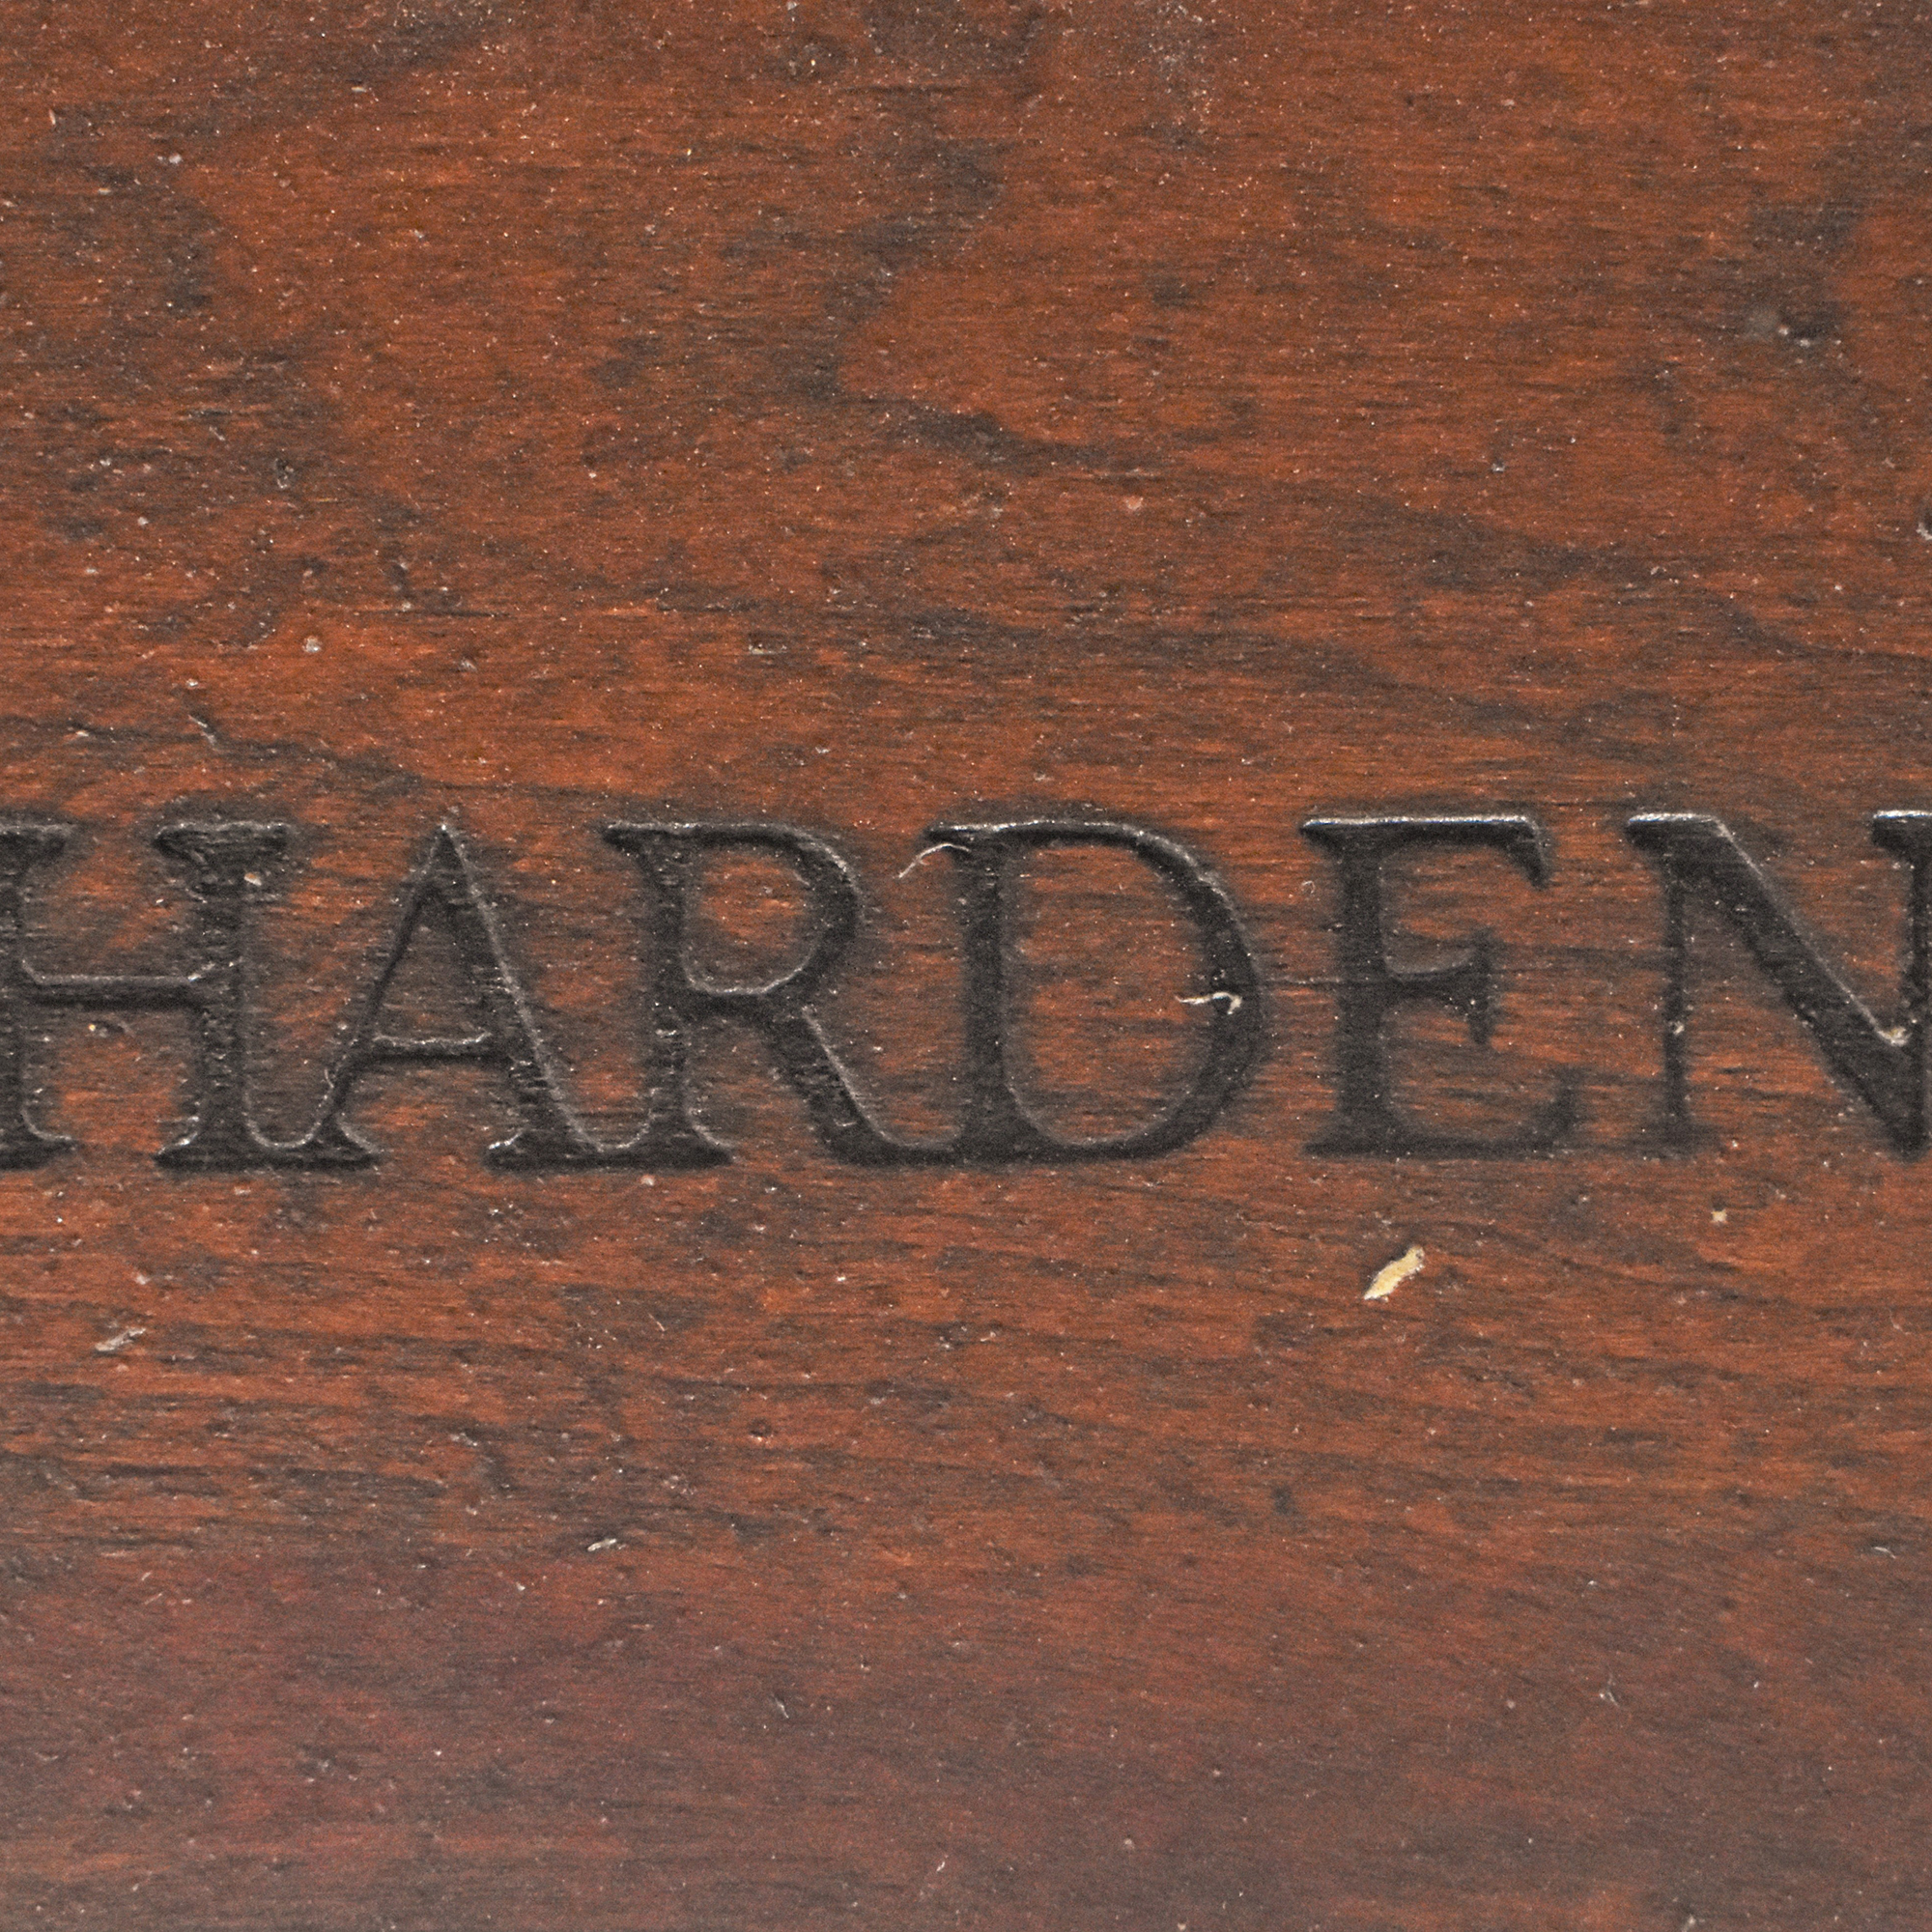 Harden Harden Upholstered Dining Chairs used